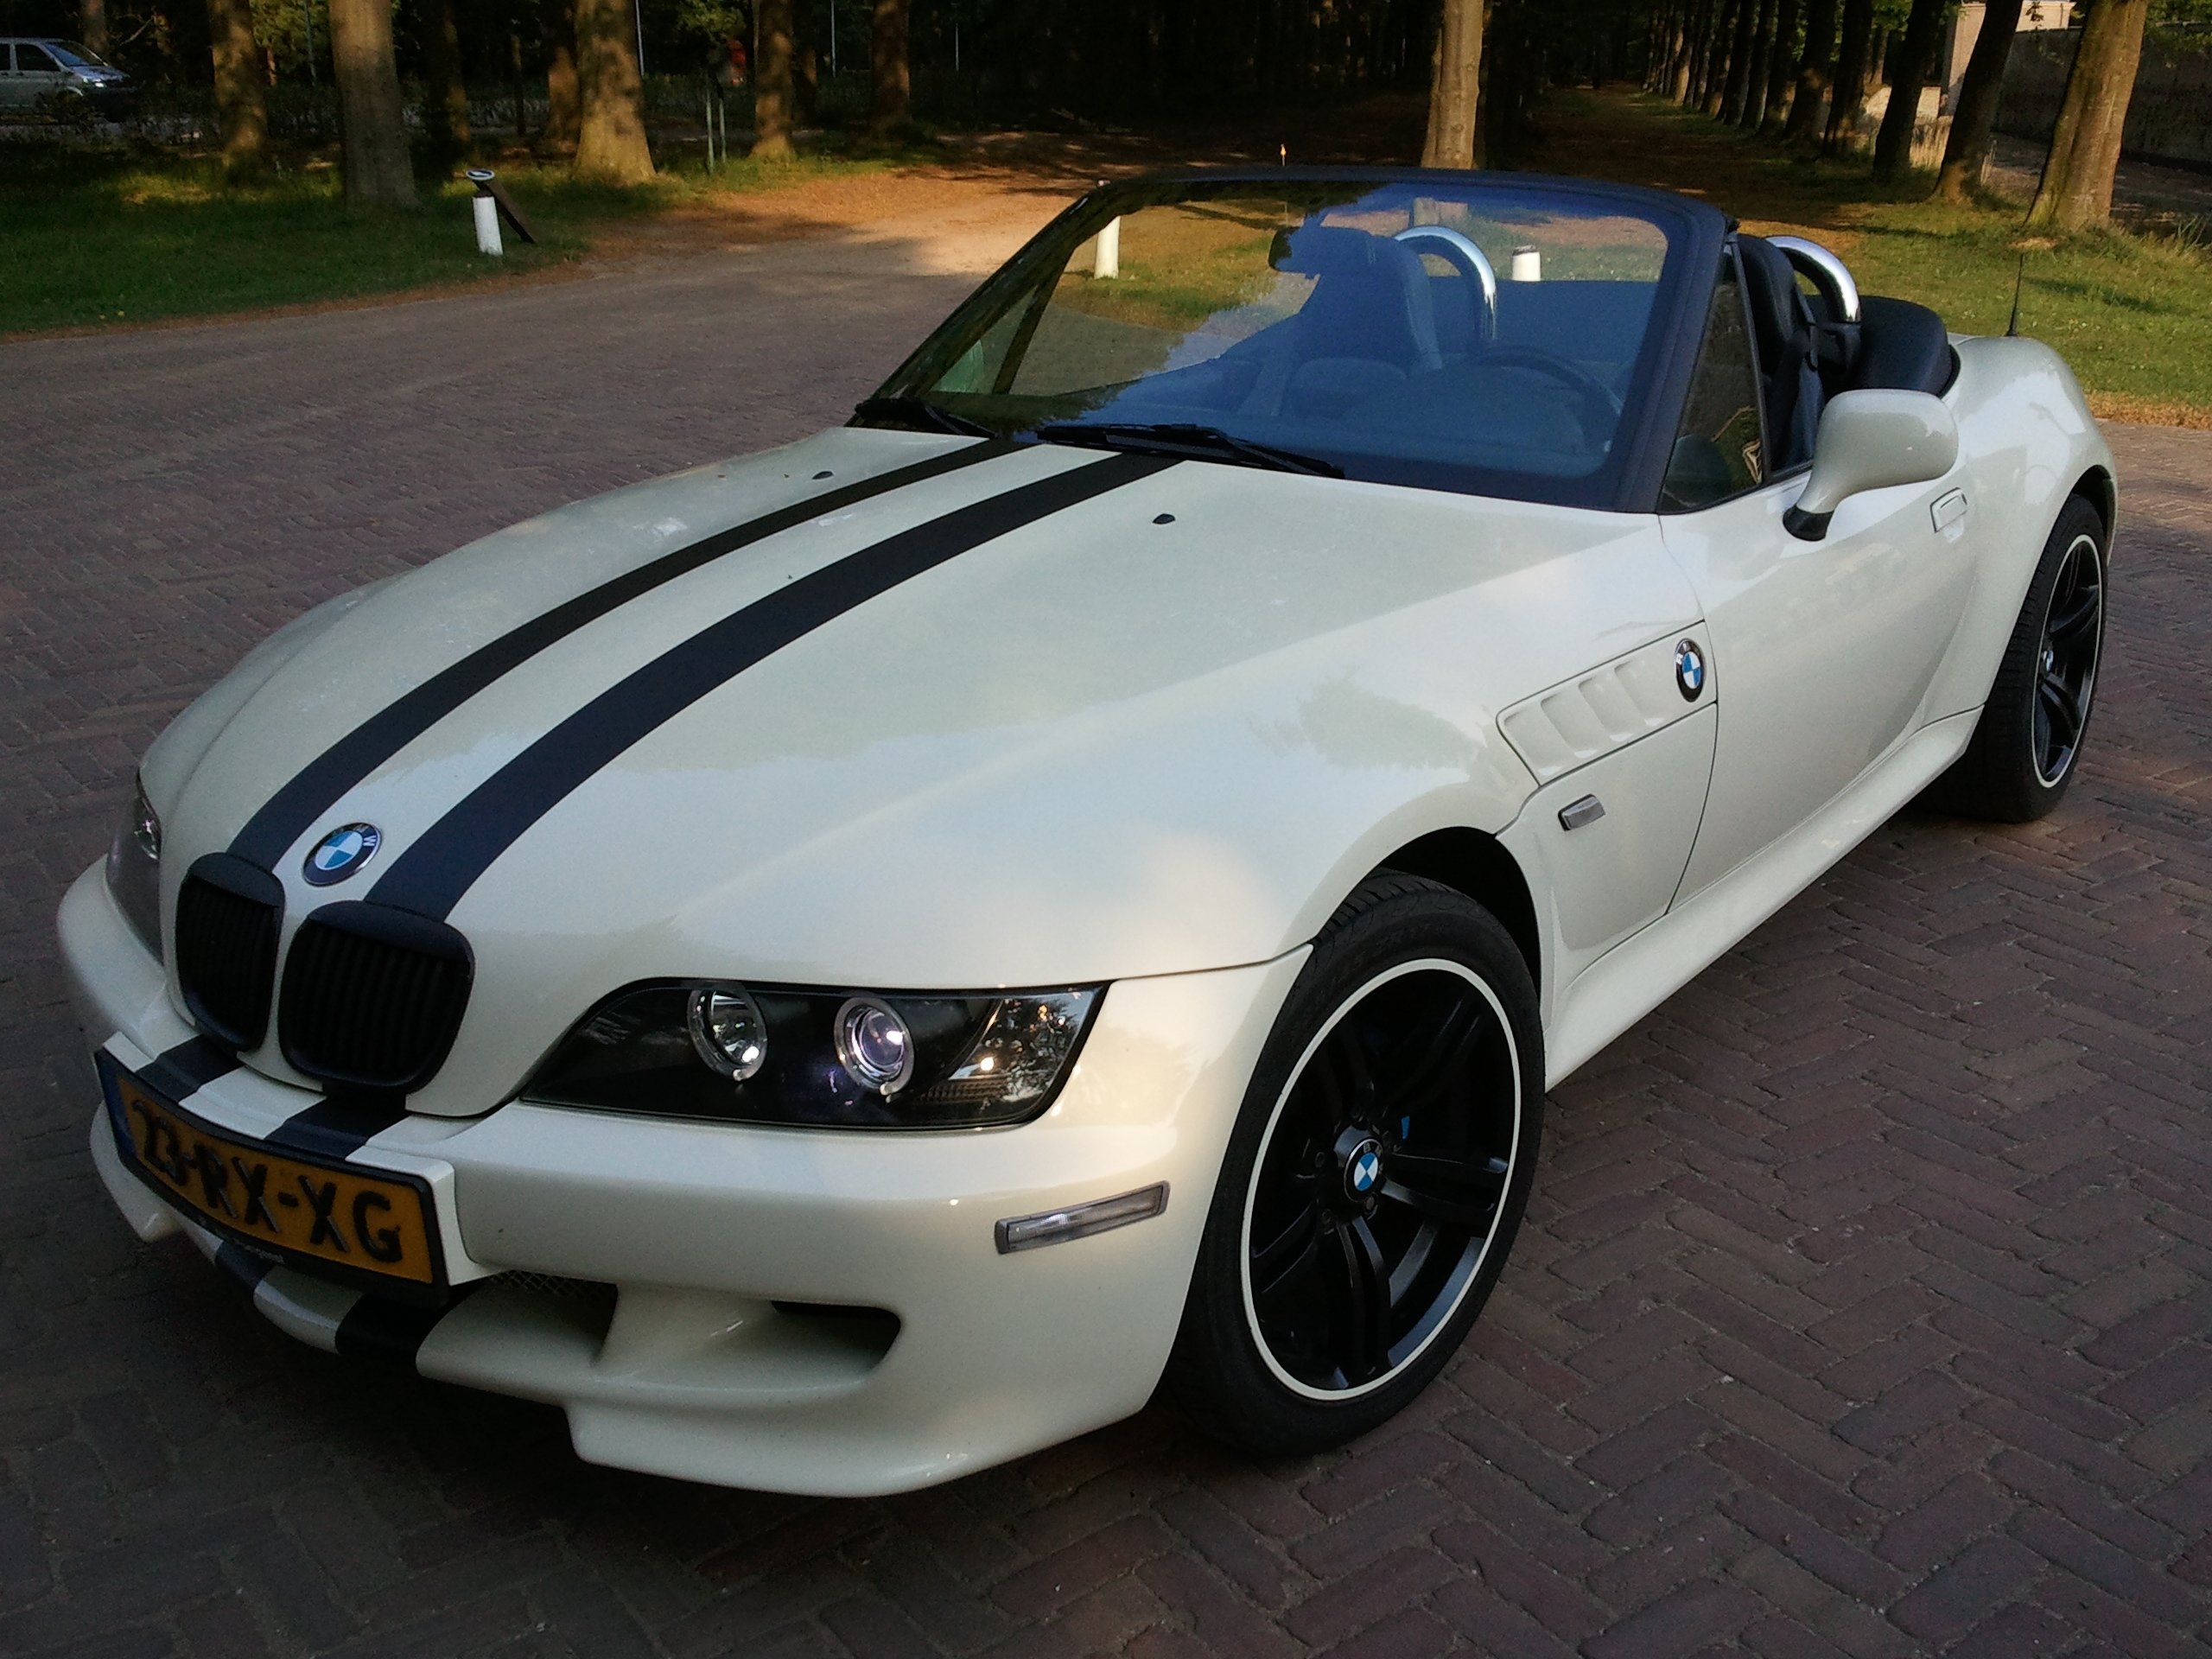 Monte-Carlo1980 1996 BMW Z3Roadster 2D Specs, Photos